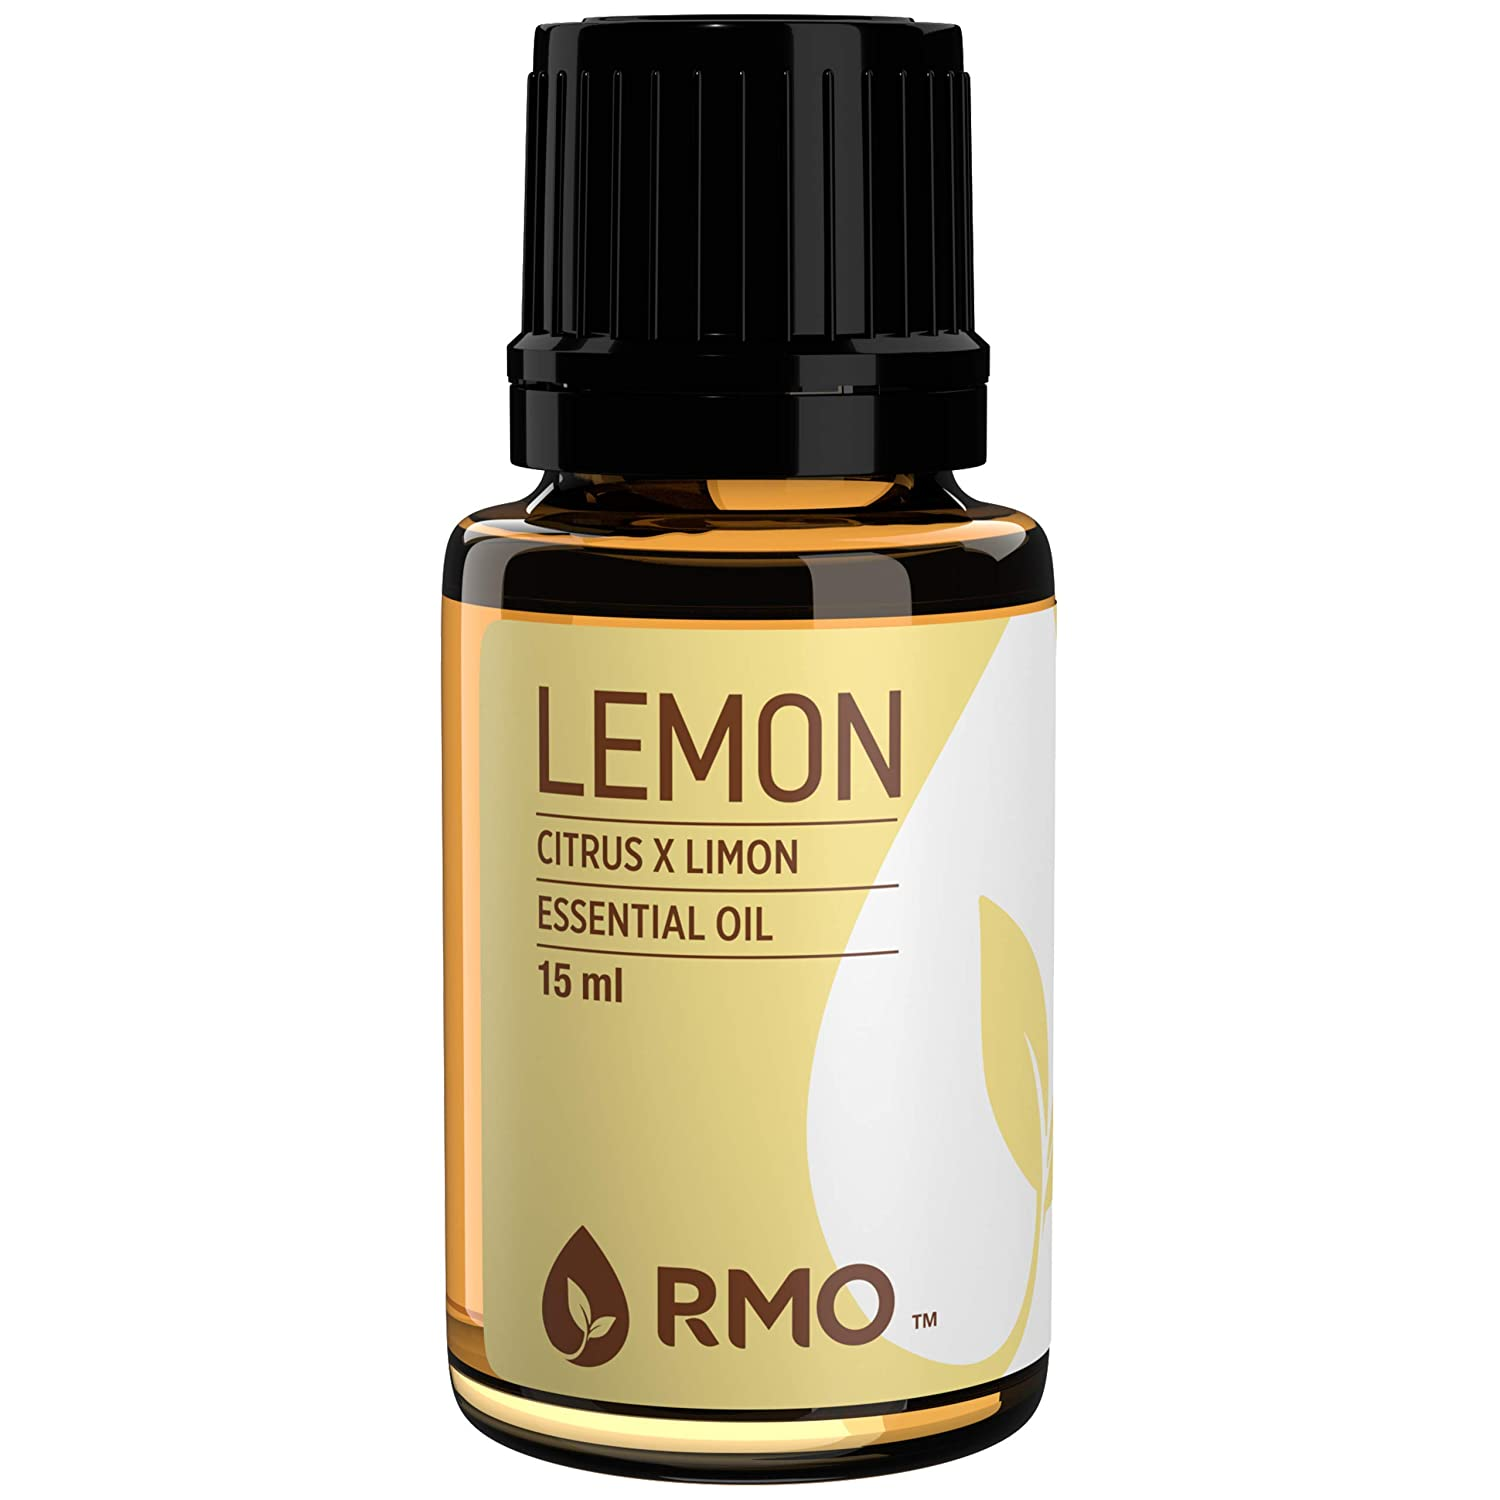 Lemon Oil Uses